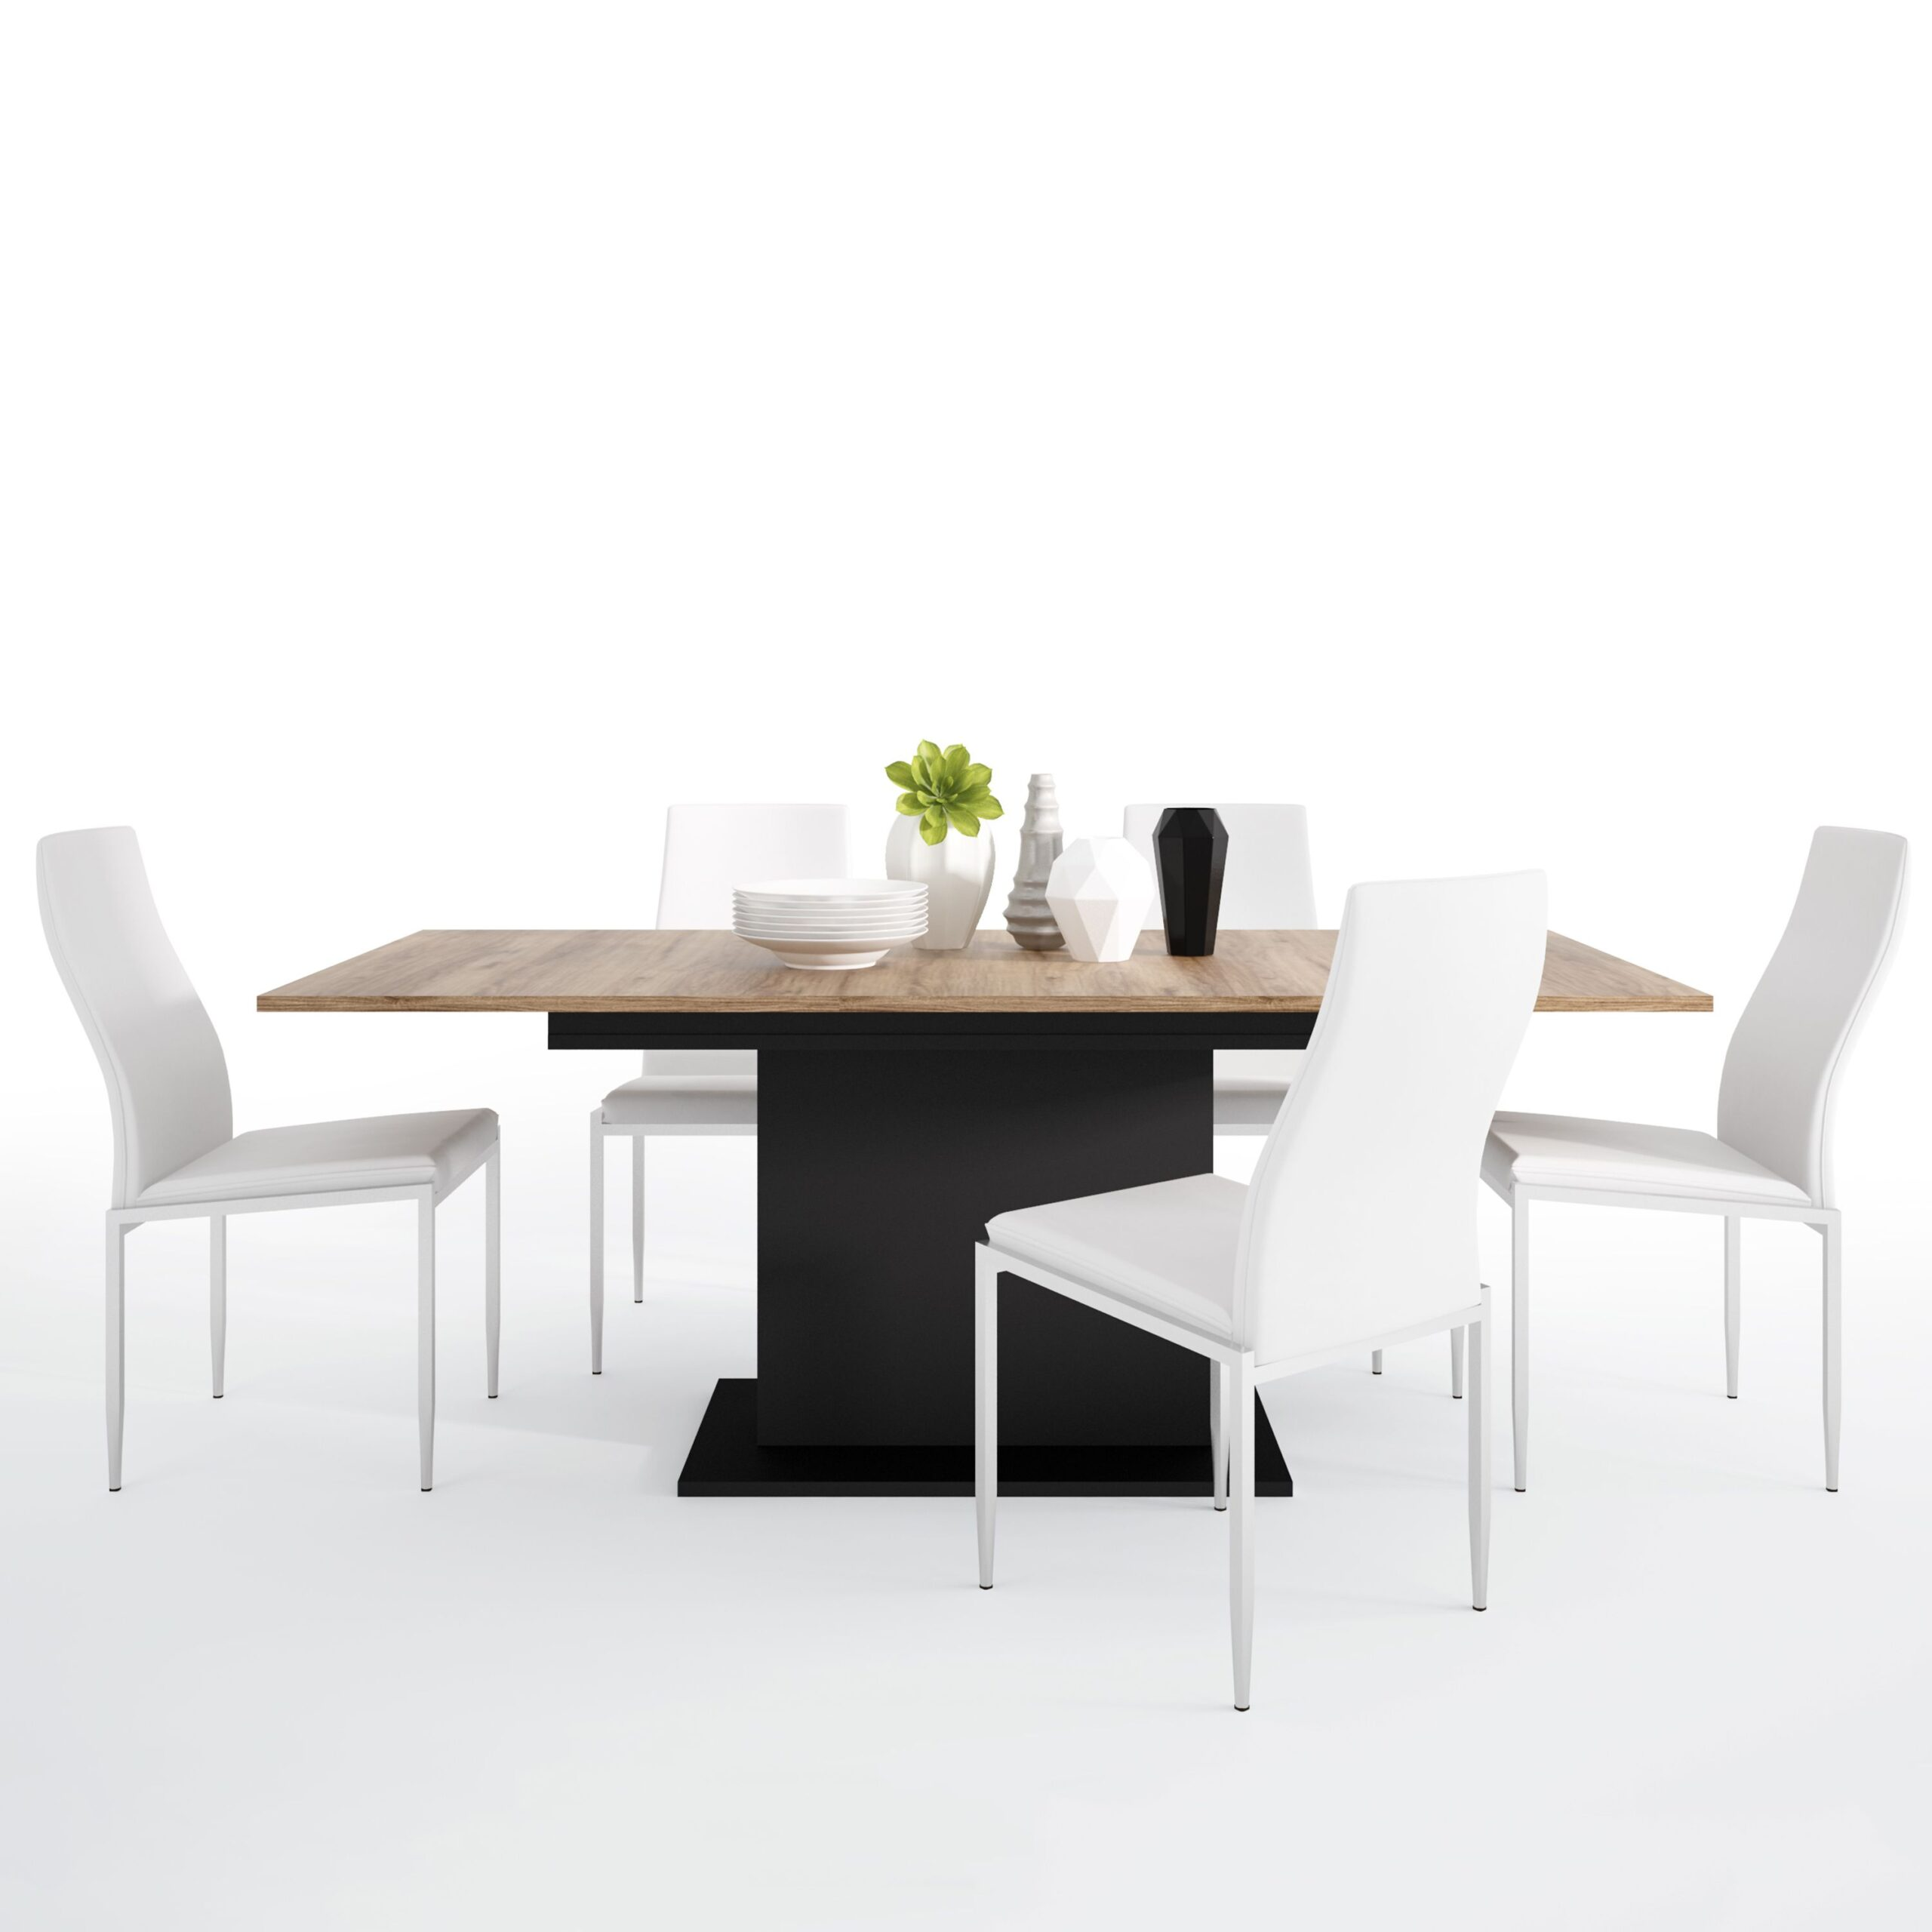 Yolo Set Yolo Extending Table 6 Lillie High Chair White.